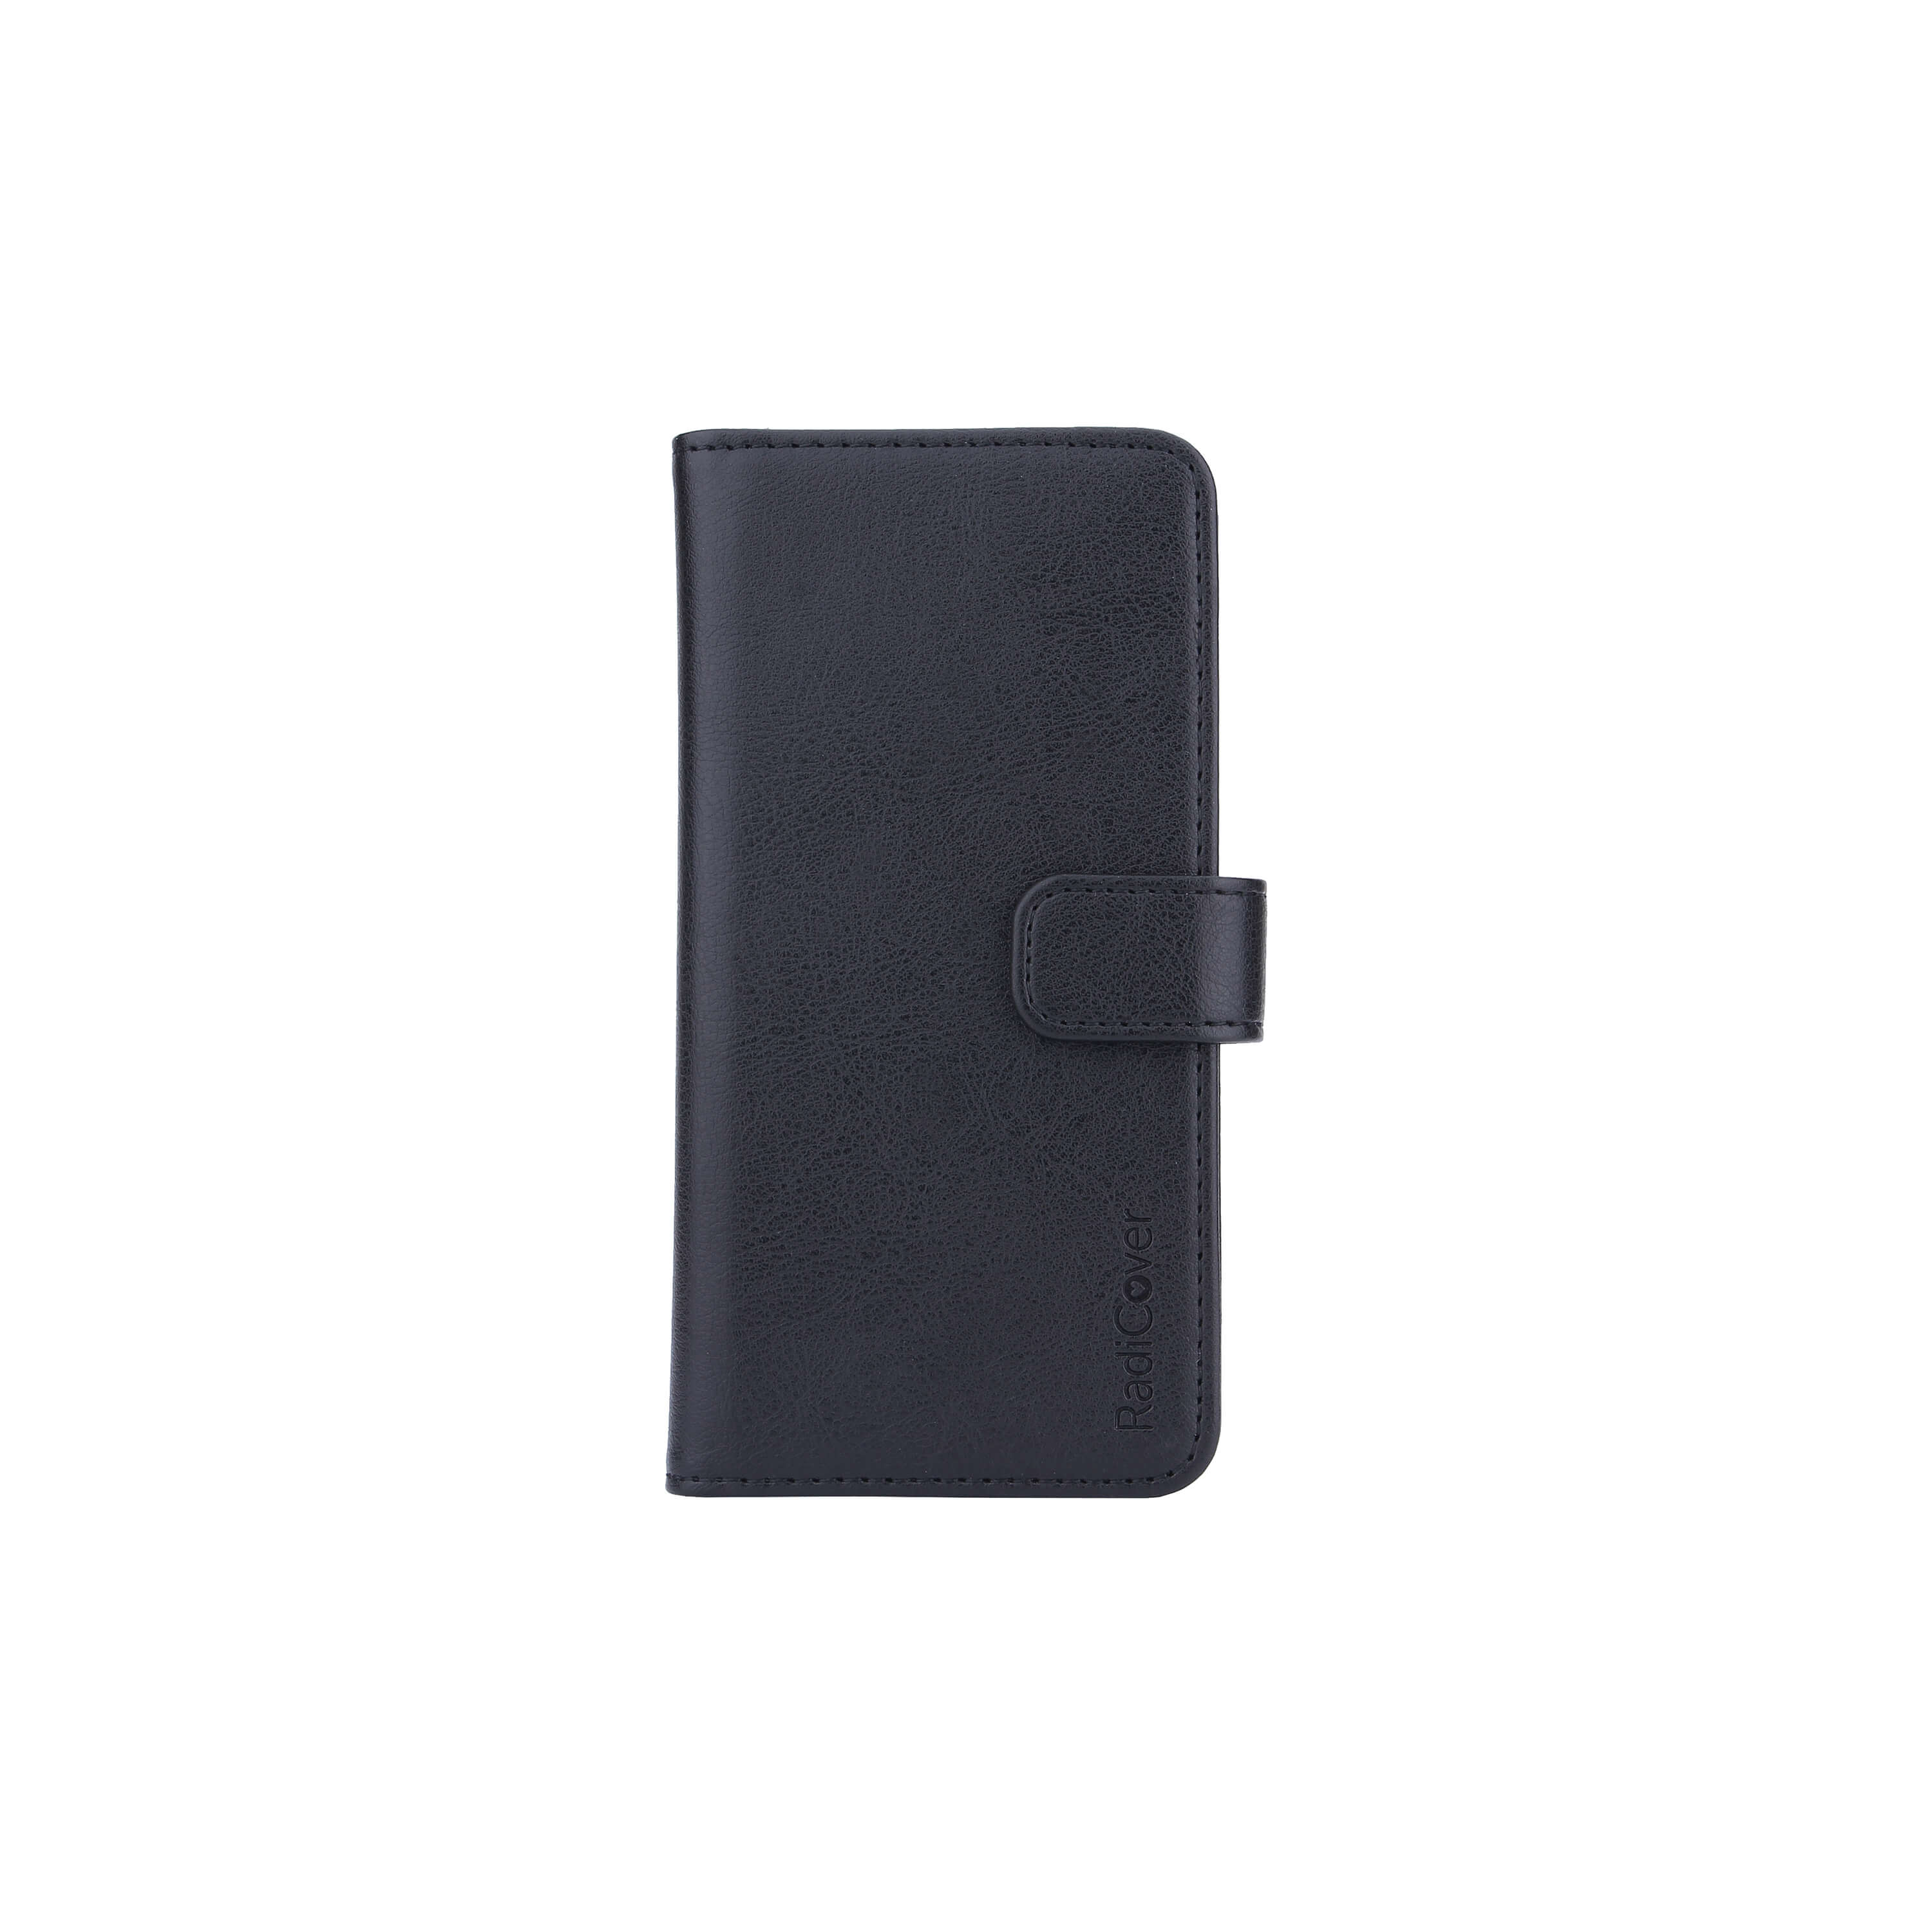 "RadiCover - Radiation protection wallet Leather Universal Medium 5-5,4"" Exclusive 2in1"